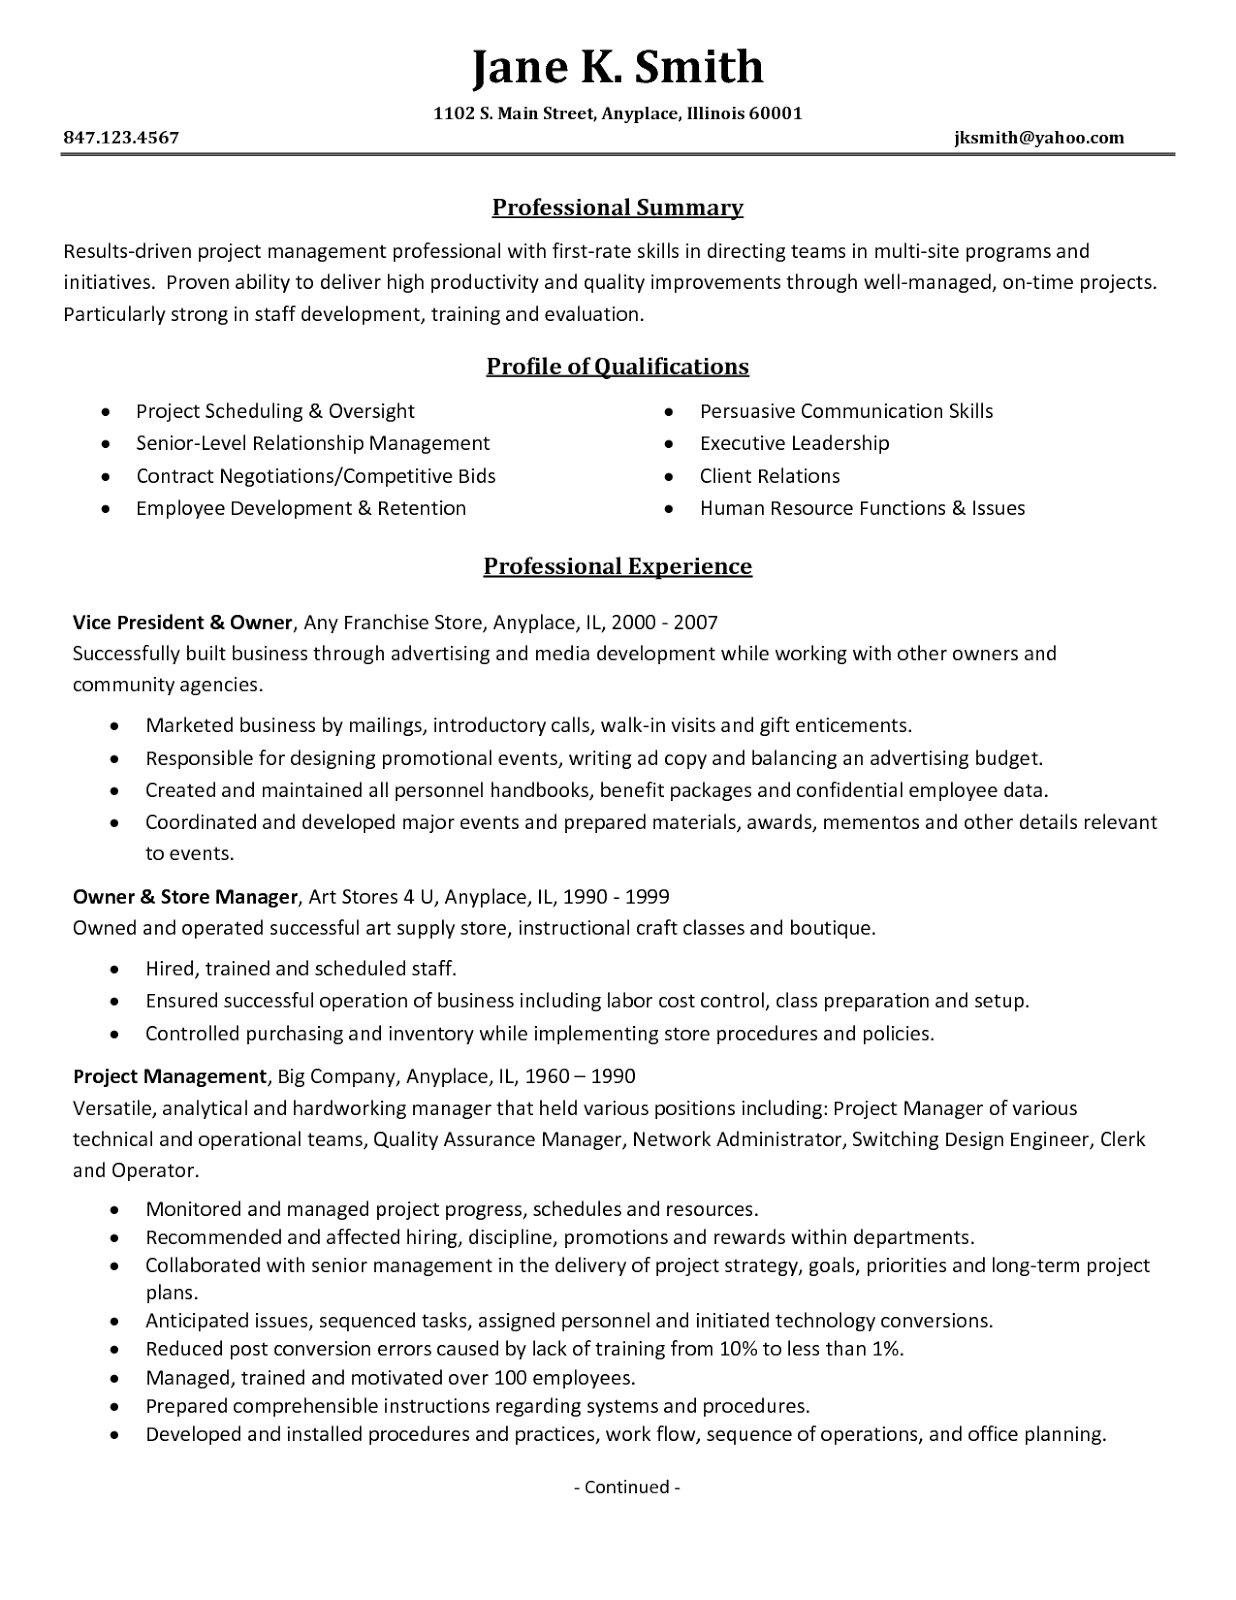 resume easyjob builder template best resume template resume easyjob builder template best resume builder template cover letter for resume builder